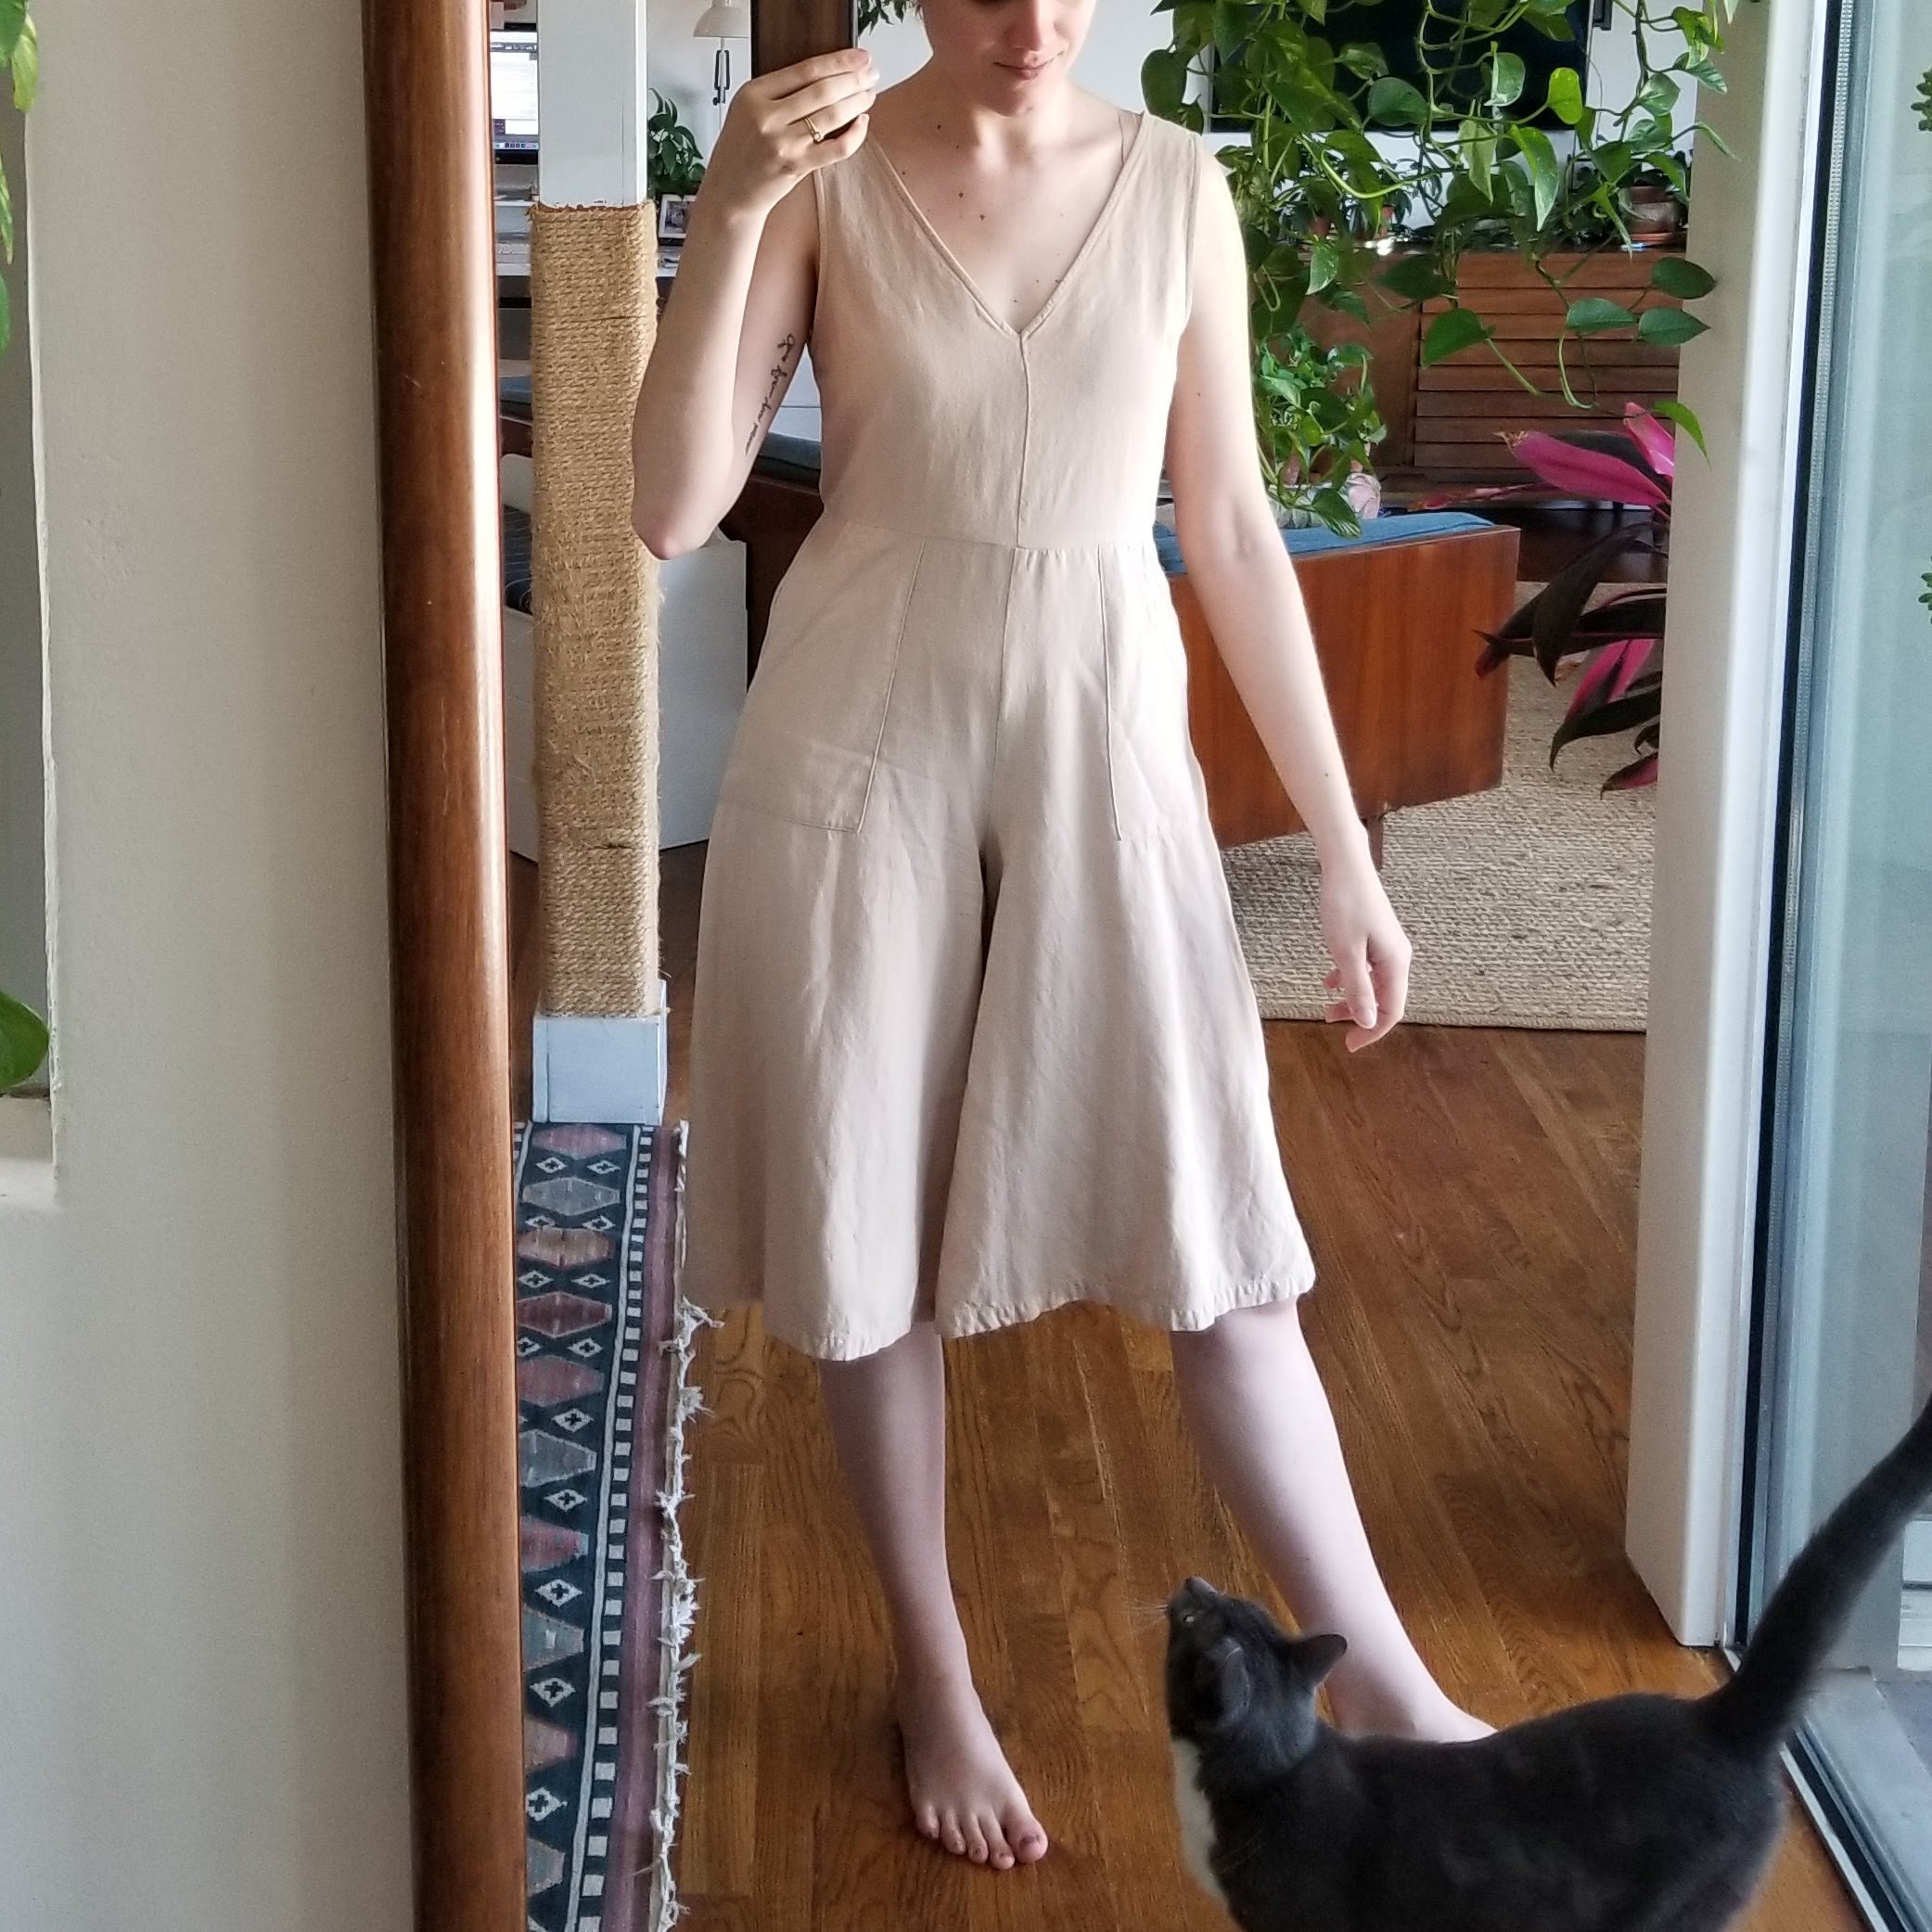 Thursday - May 3, 2018I love this jumpsuit/romper. Wrote about it last week here, but basically I'm delighted by how the color blends with my skin tone. I love the floaty but tailored silhouette too — so often it feels like jumpsuit designers default to baggy baggy baggy, This one has a back zip so it can be more fitted.